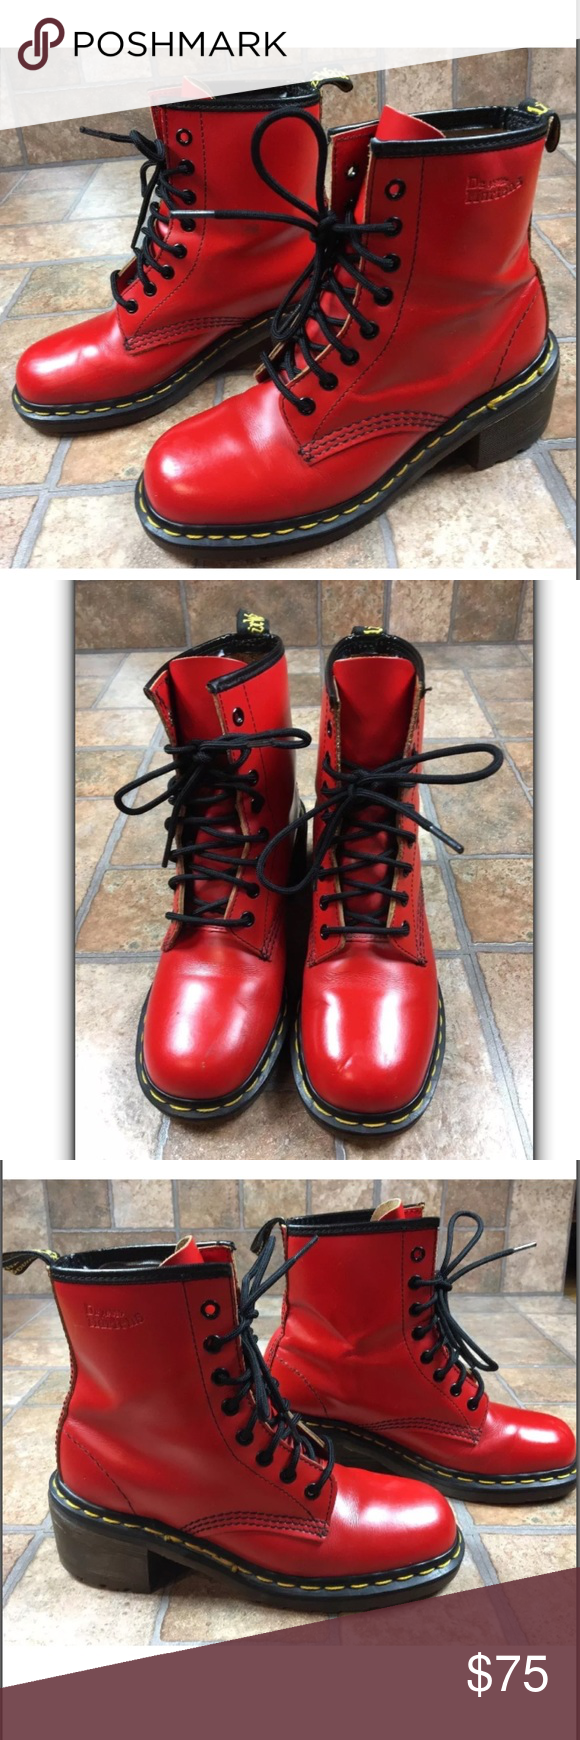 beec8609a5bc Dr. Martens Red Leather Combat Ankle Boots US 7